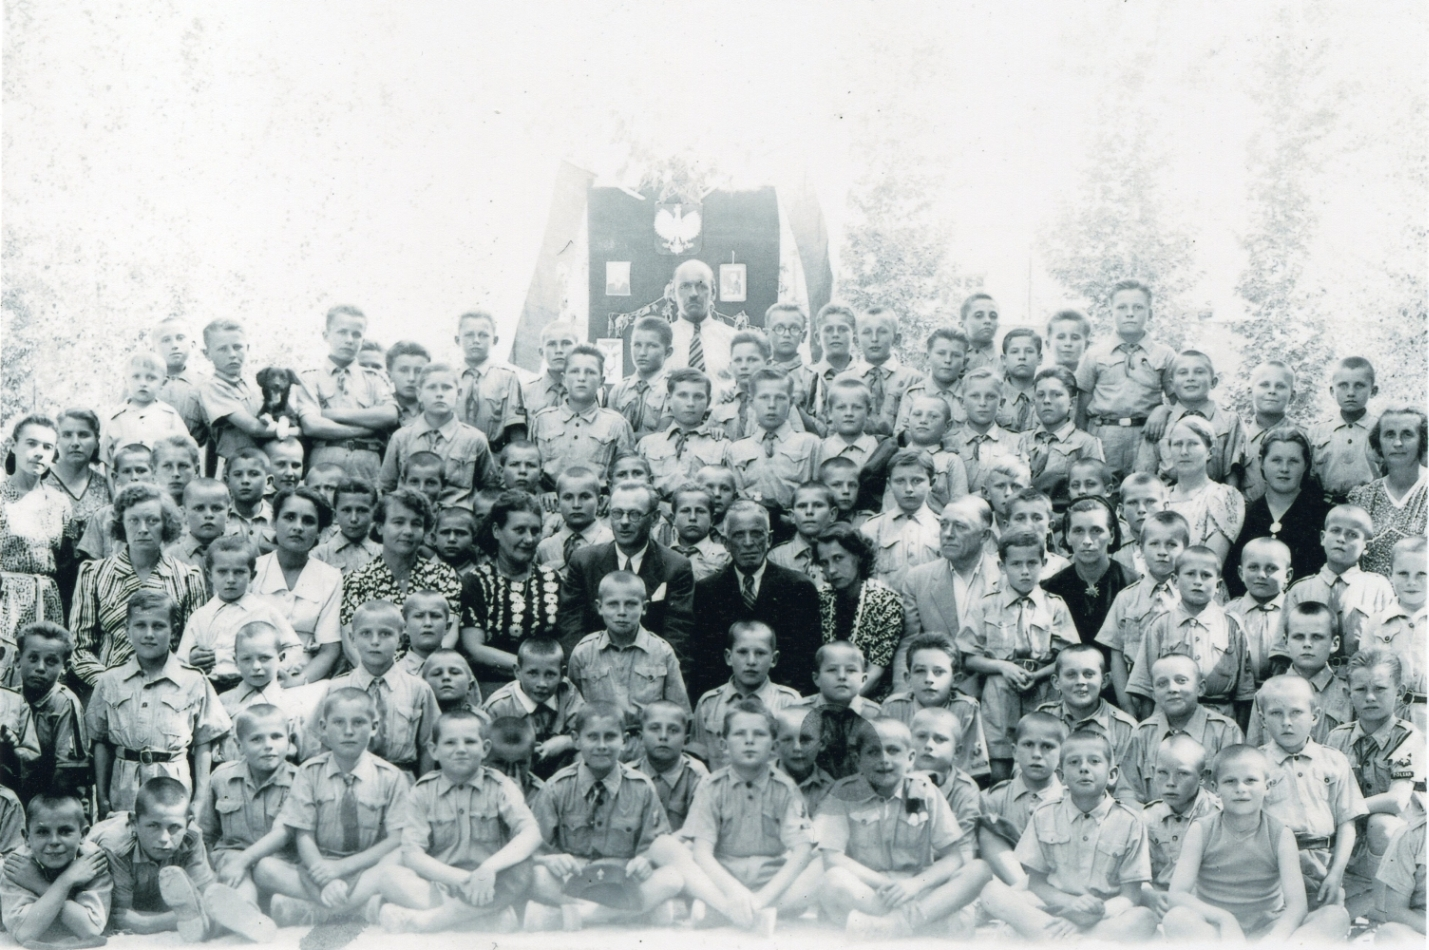 A black and white  group photograph of at least 60 young boys, wearing mostly military-style uniforms, and caregivers, in front of a banner with  a white eagle. Few smiles, but one boy holding a black dog.